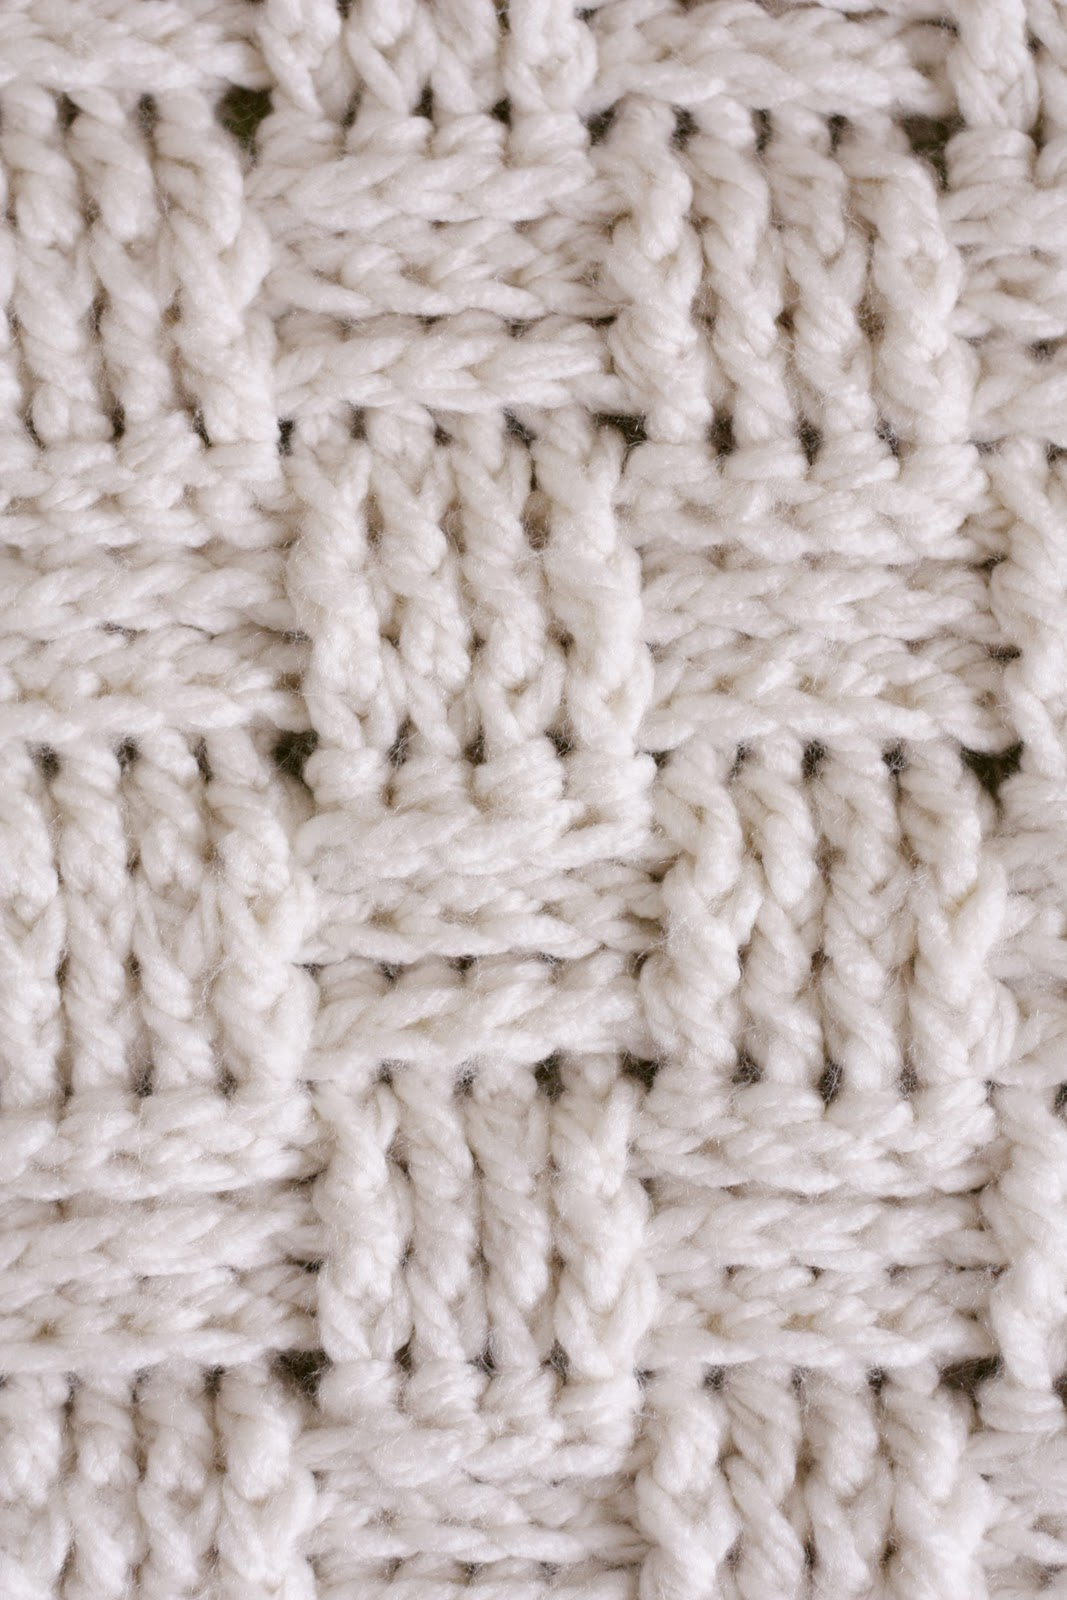 Advanced Crochet Afghan Patterns Im re-writing the pattern